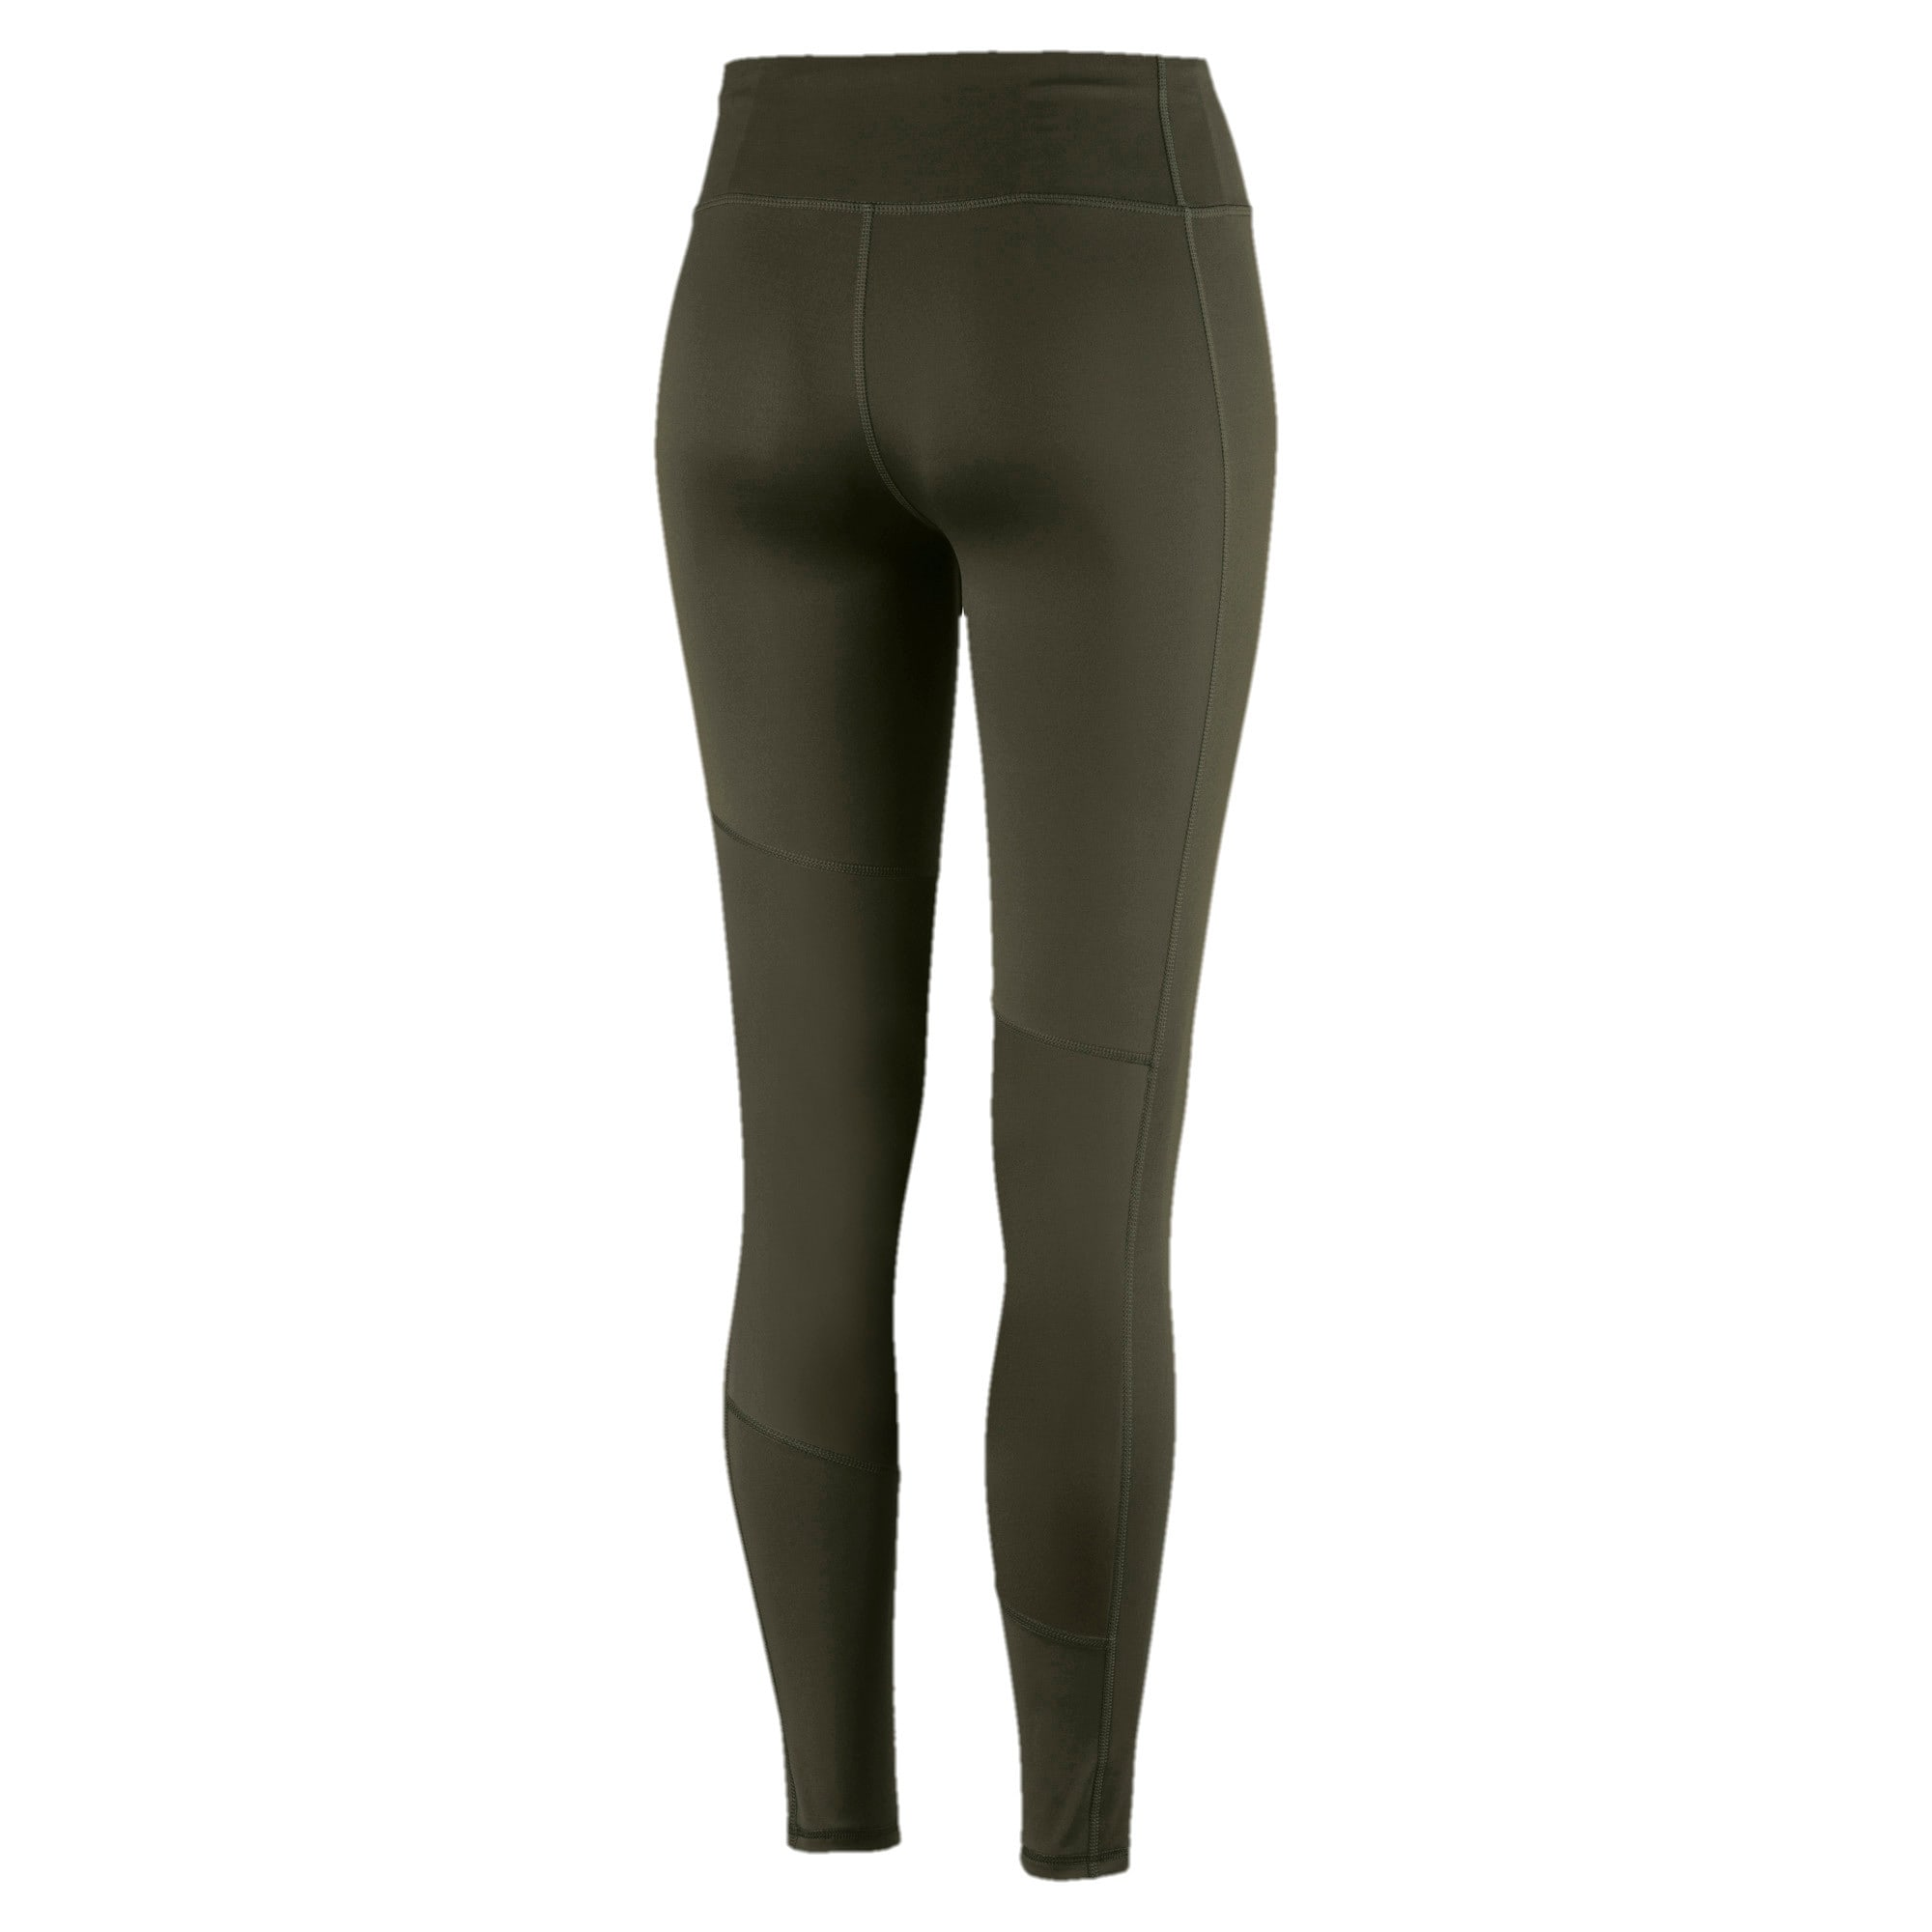 Thumbnail 4 of Always On Solid Women's 7/8 Training Leggings, Forest Night, medium-IND